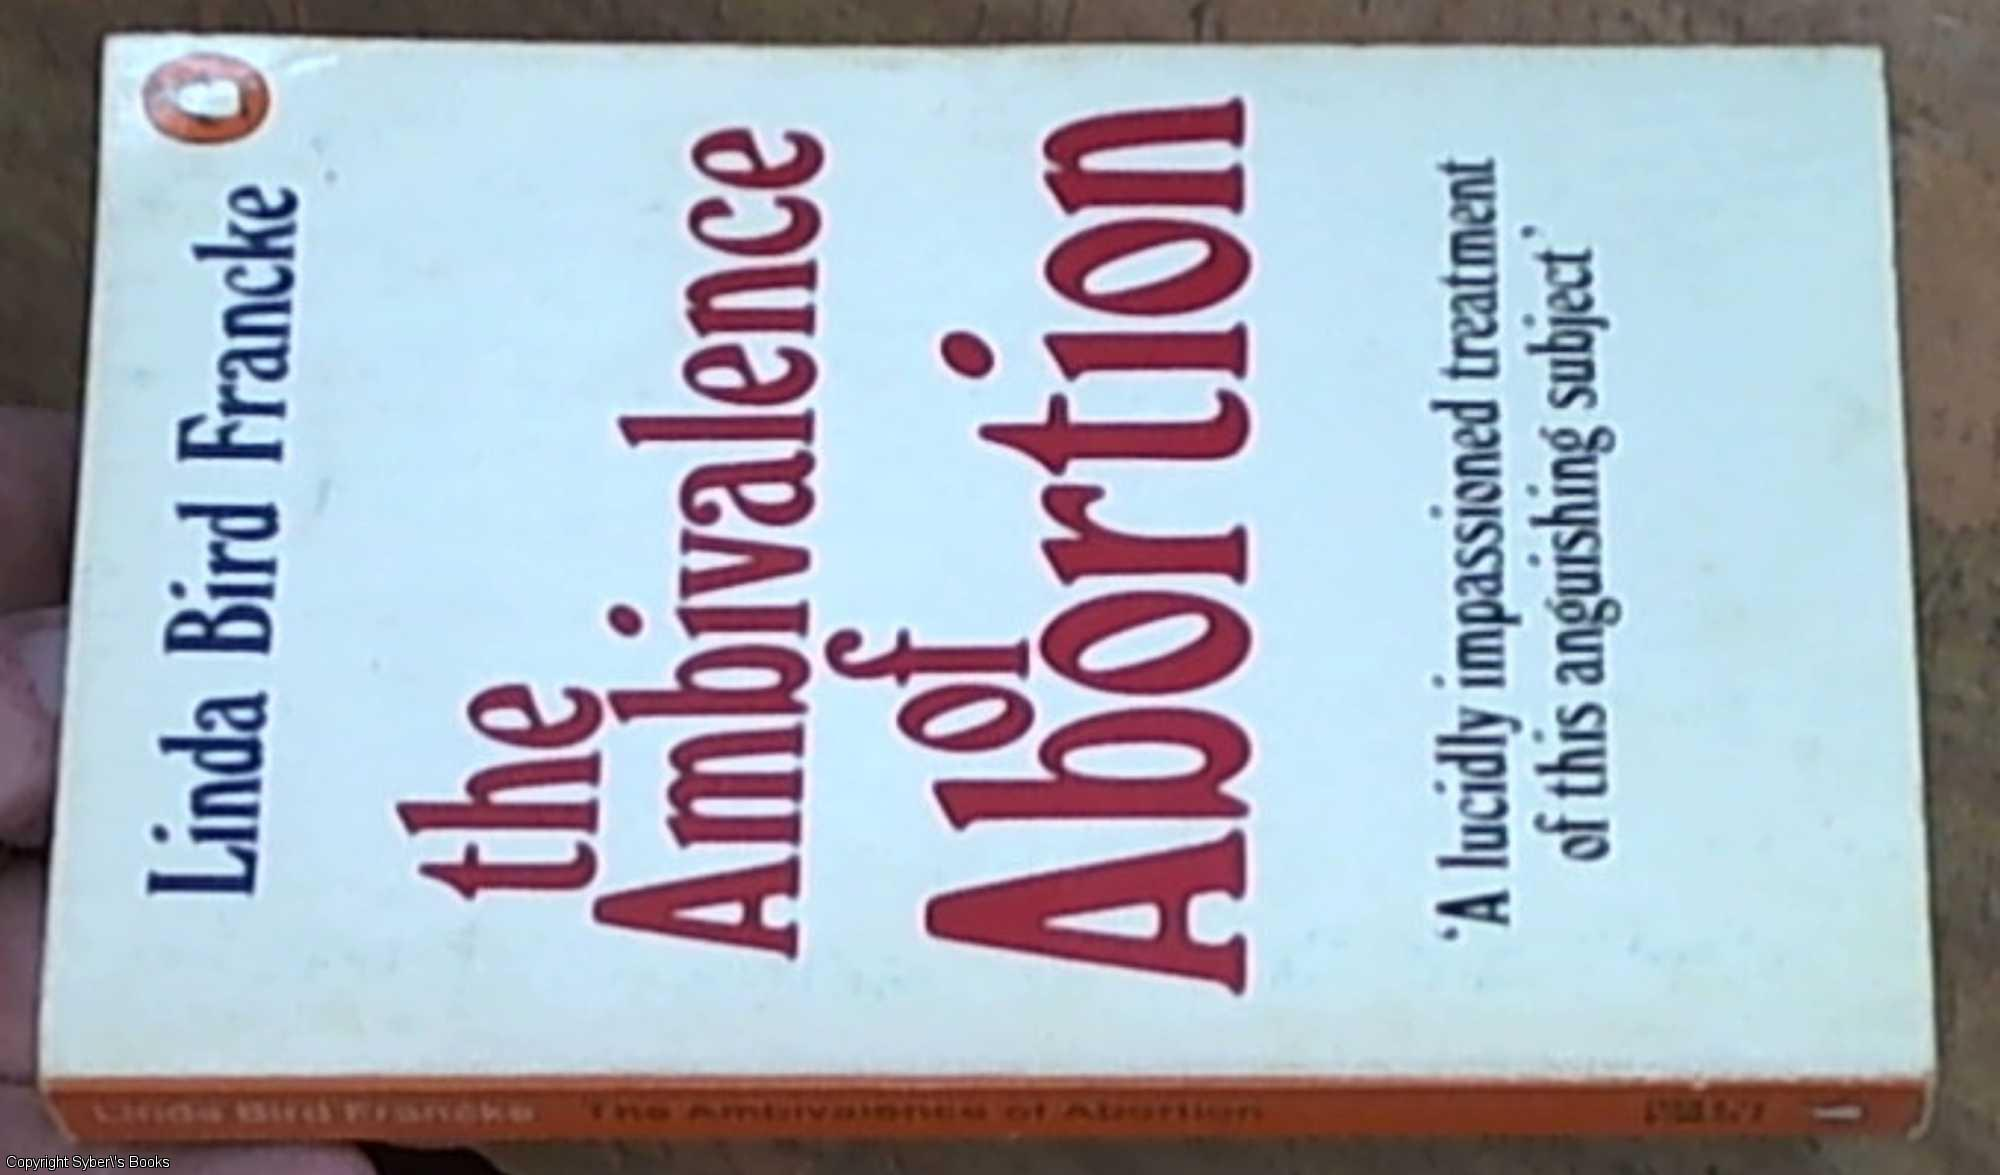 an analysis of the ambivalence of abortion by linda bird francke